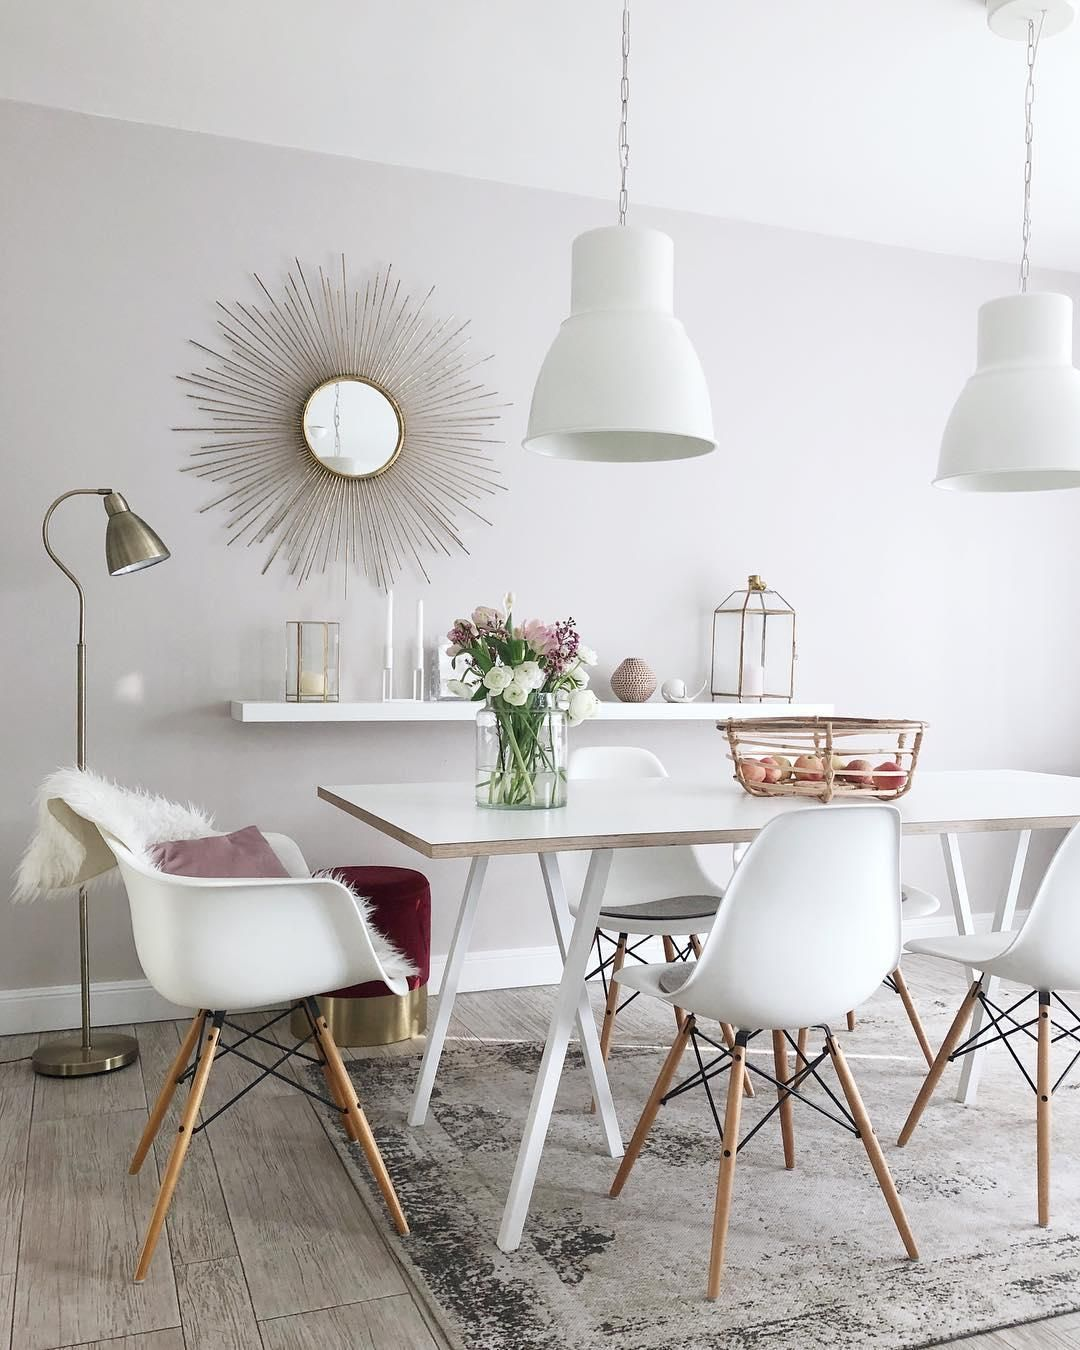 Interior Esszimmer We Love Sunburst Mirrors Die Dekorativen Sonnenspiegel In Gold